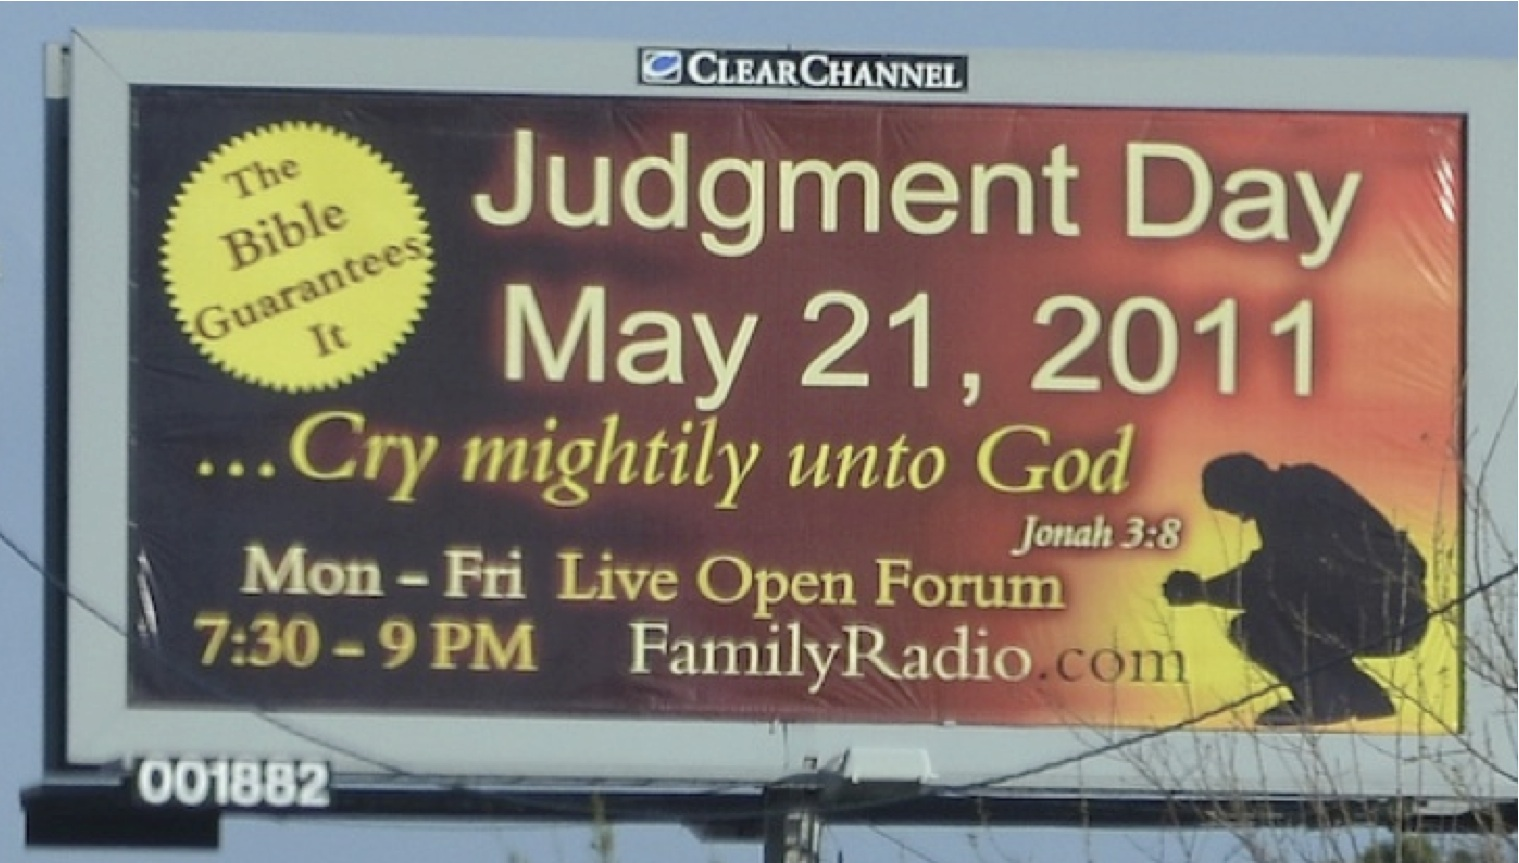 http://larrydixon.files.wordpress.com/2011/04/judgment-day-may-21.jpg